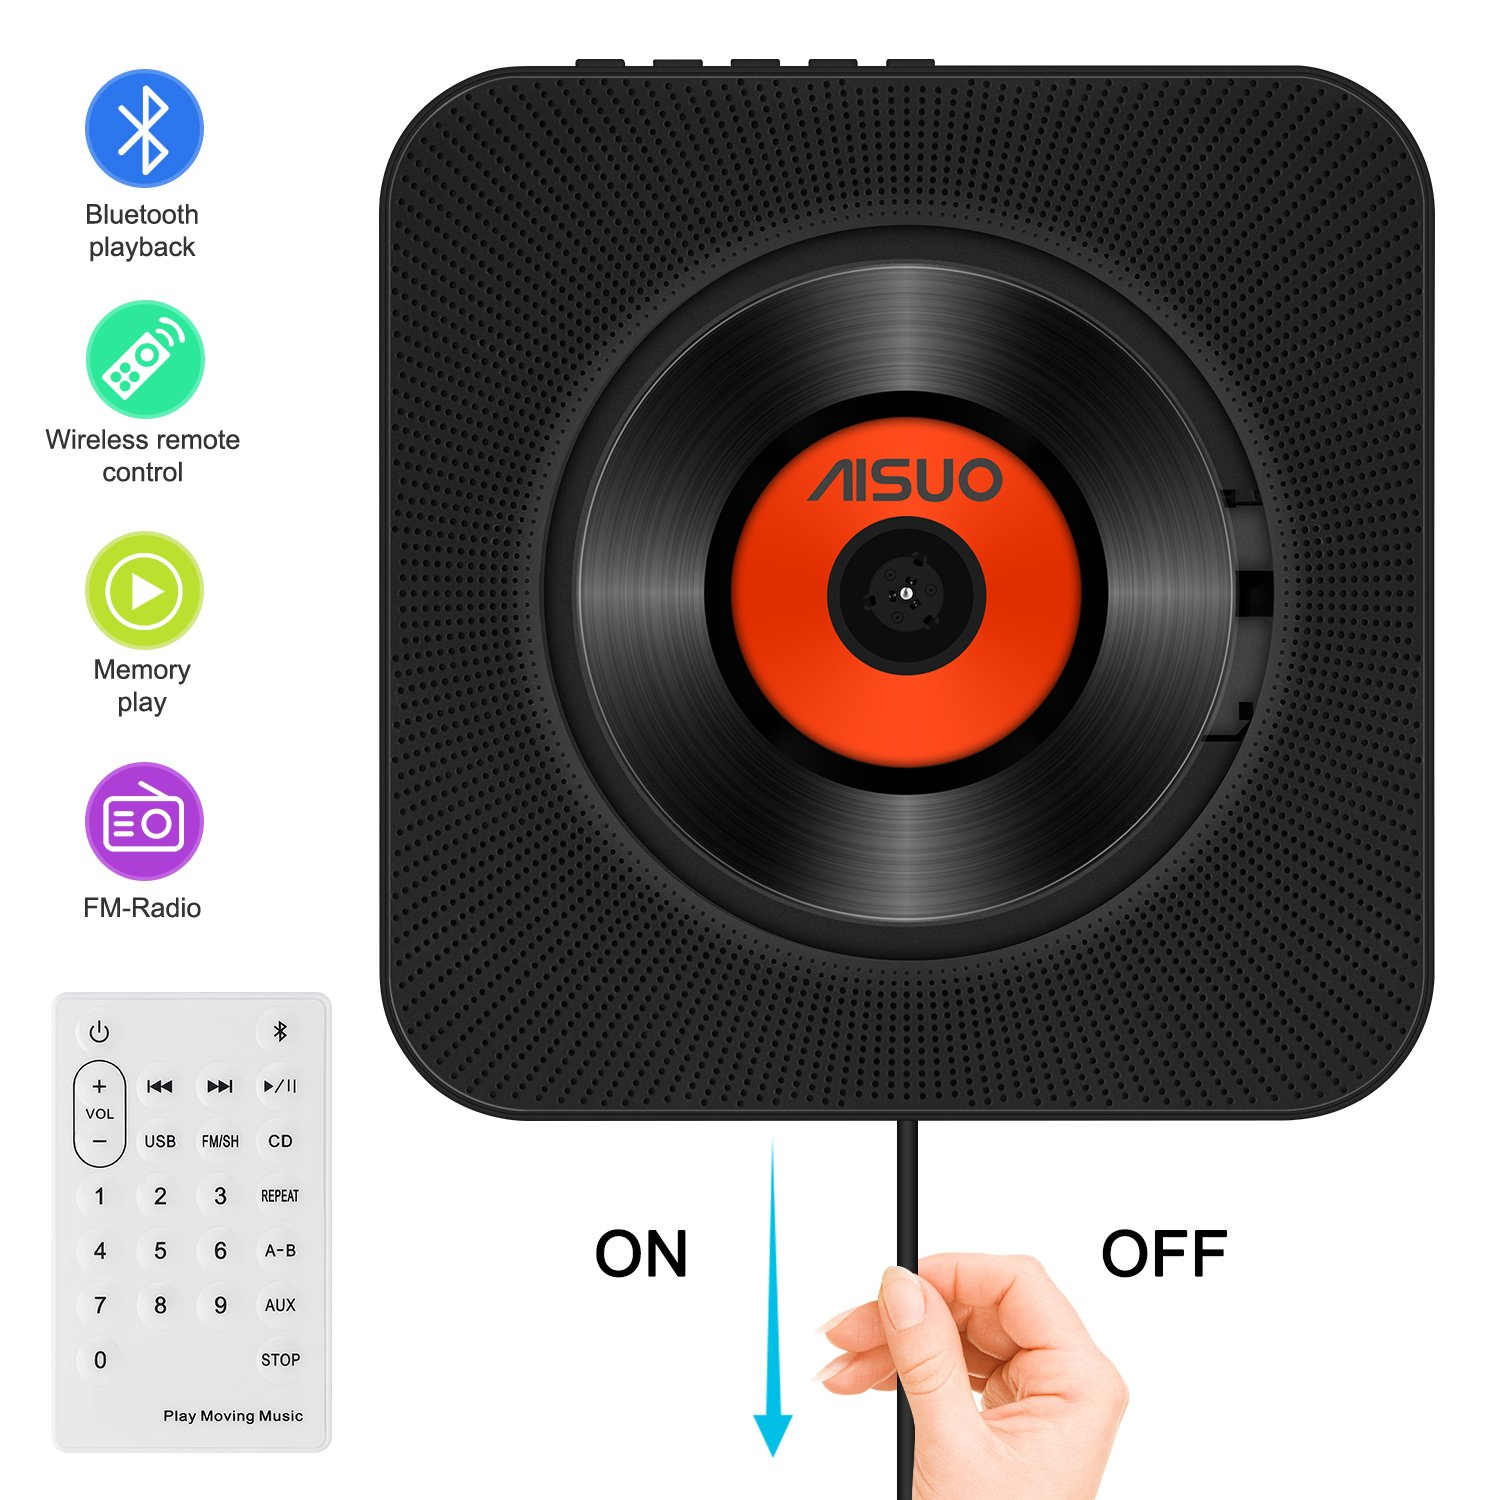 Aisuo CD Player, Home Audio with Built-in Bluetooth 4.2 HiFi Speaker, Wall Mountable Kit, Remote Control, Support FM Radio & Earphones, The Best Gift for Friends and Teens.